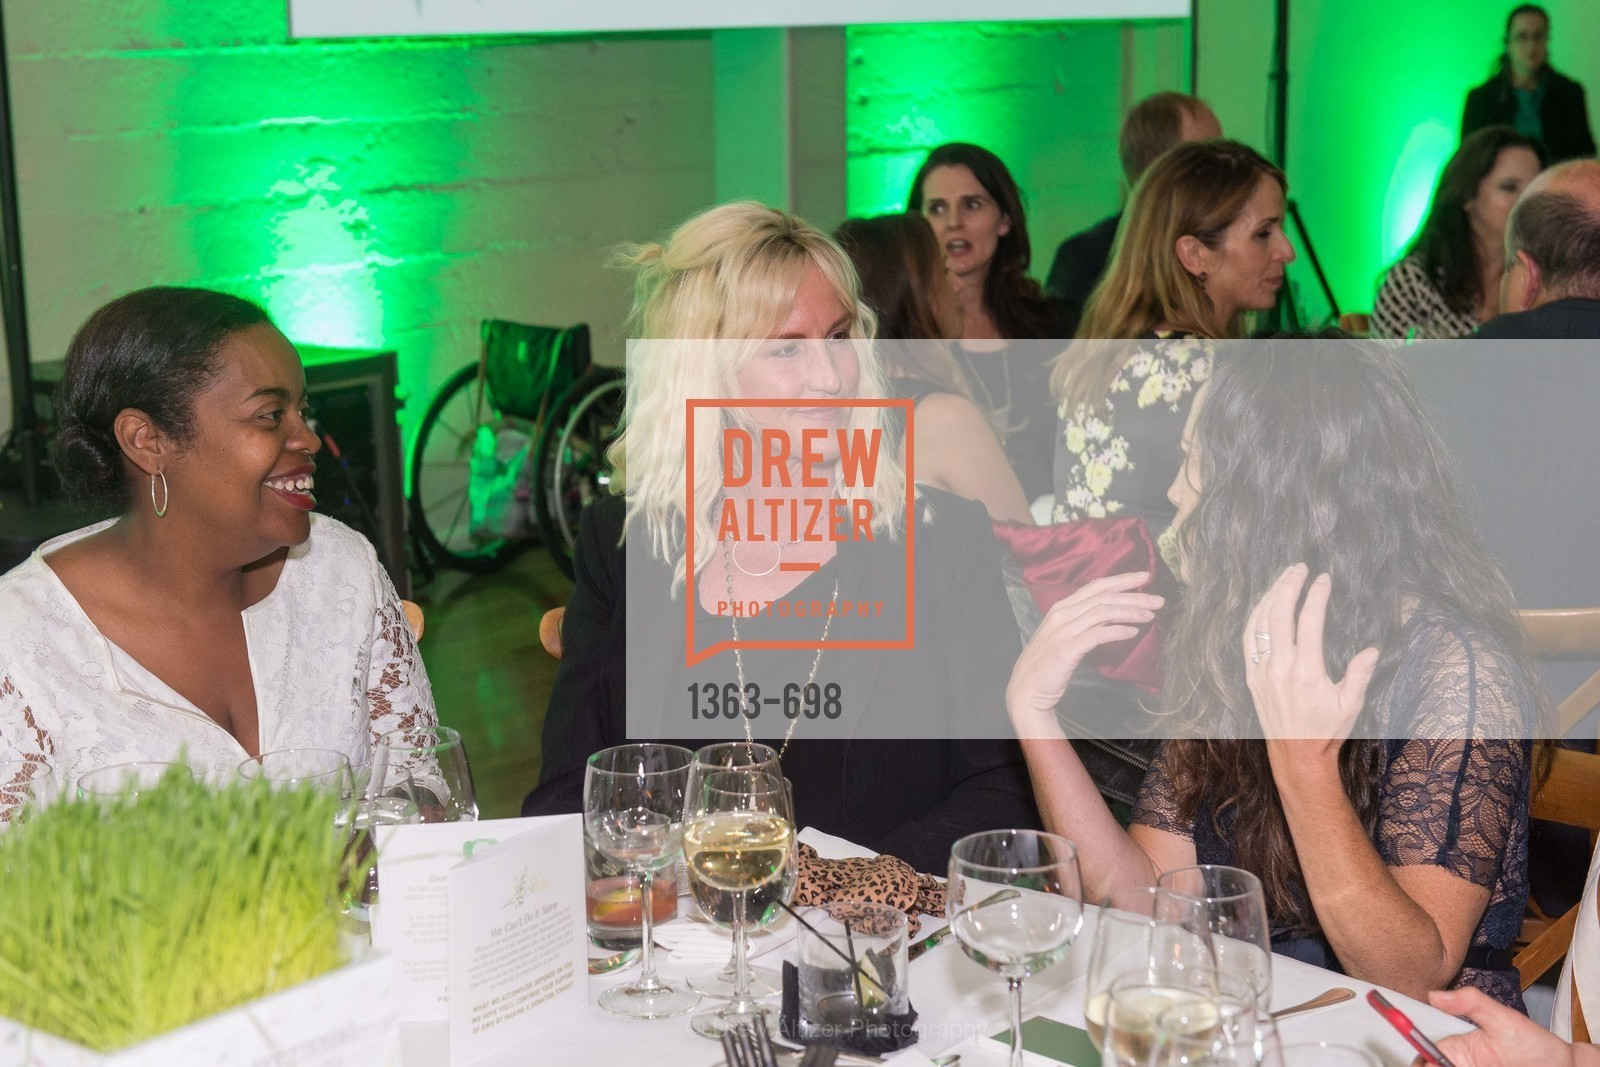 Chantal Walker, Erin Brockovich, EWG's 6th Annual Earth Dinner, US, May 6th, 2015,Drew Altizer, Drew Altizer Photography, full-service agency, private events, San Francisco photographer, photographer california